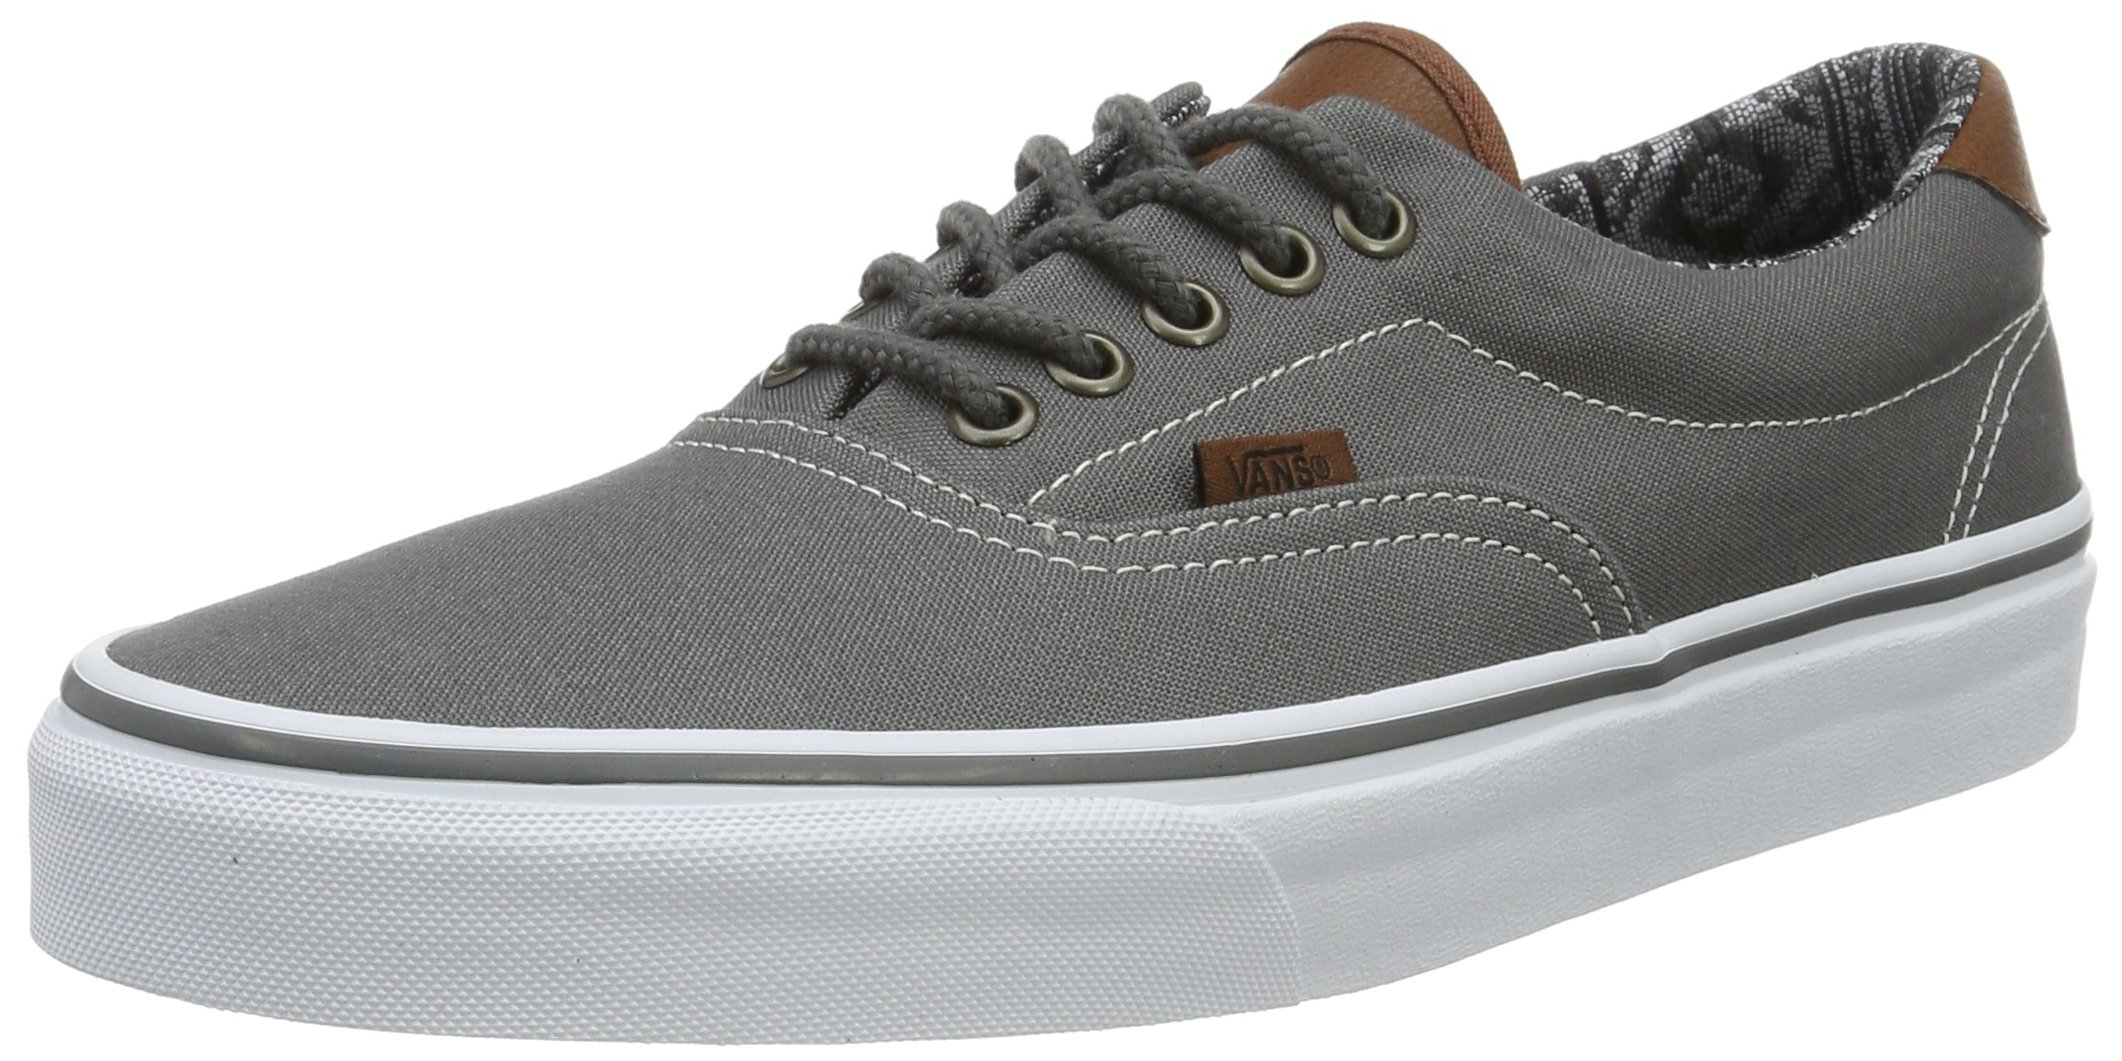 Vans Unisex Era 59 (C&L) Pewt Pewter/Italian Weave Skate Shoe 7.5 Men US / 9 Women US by Vans